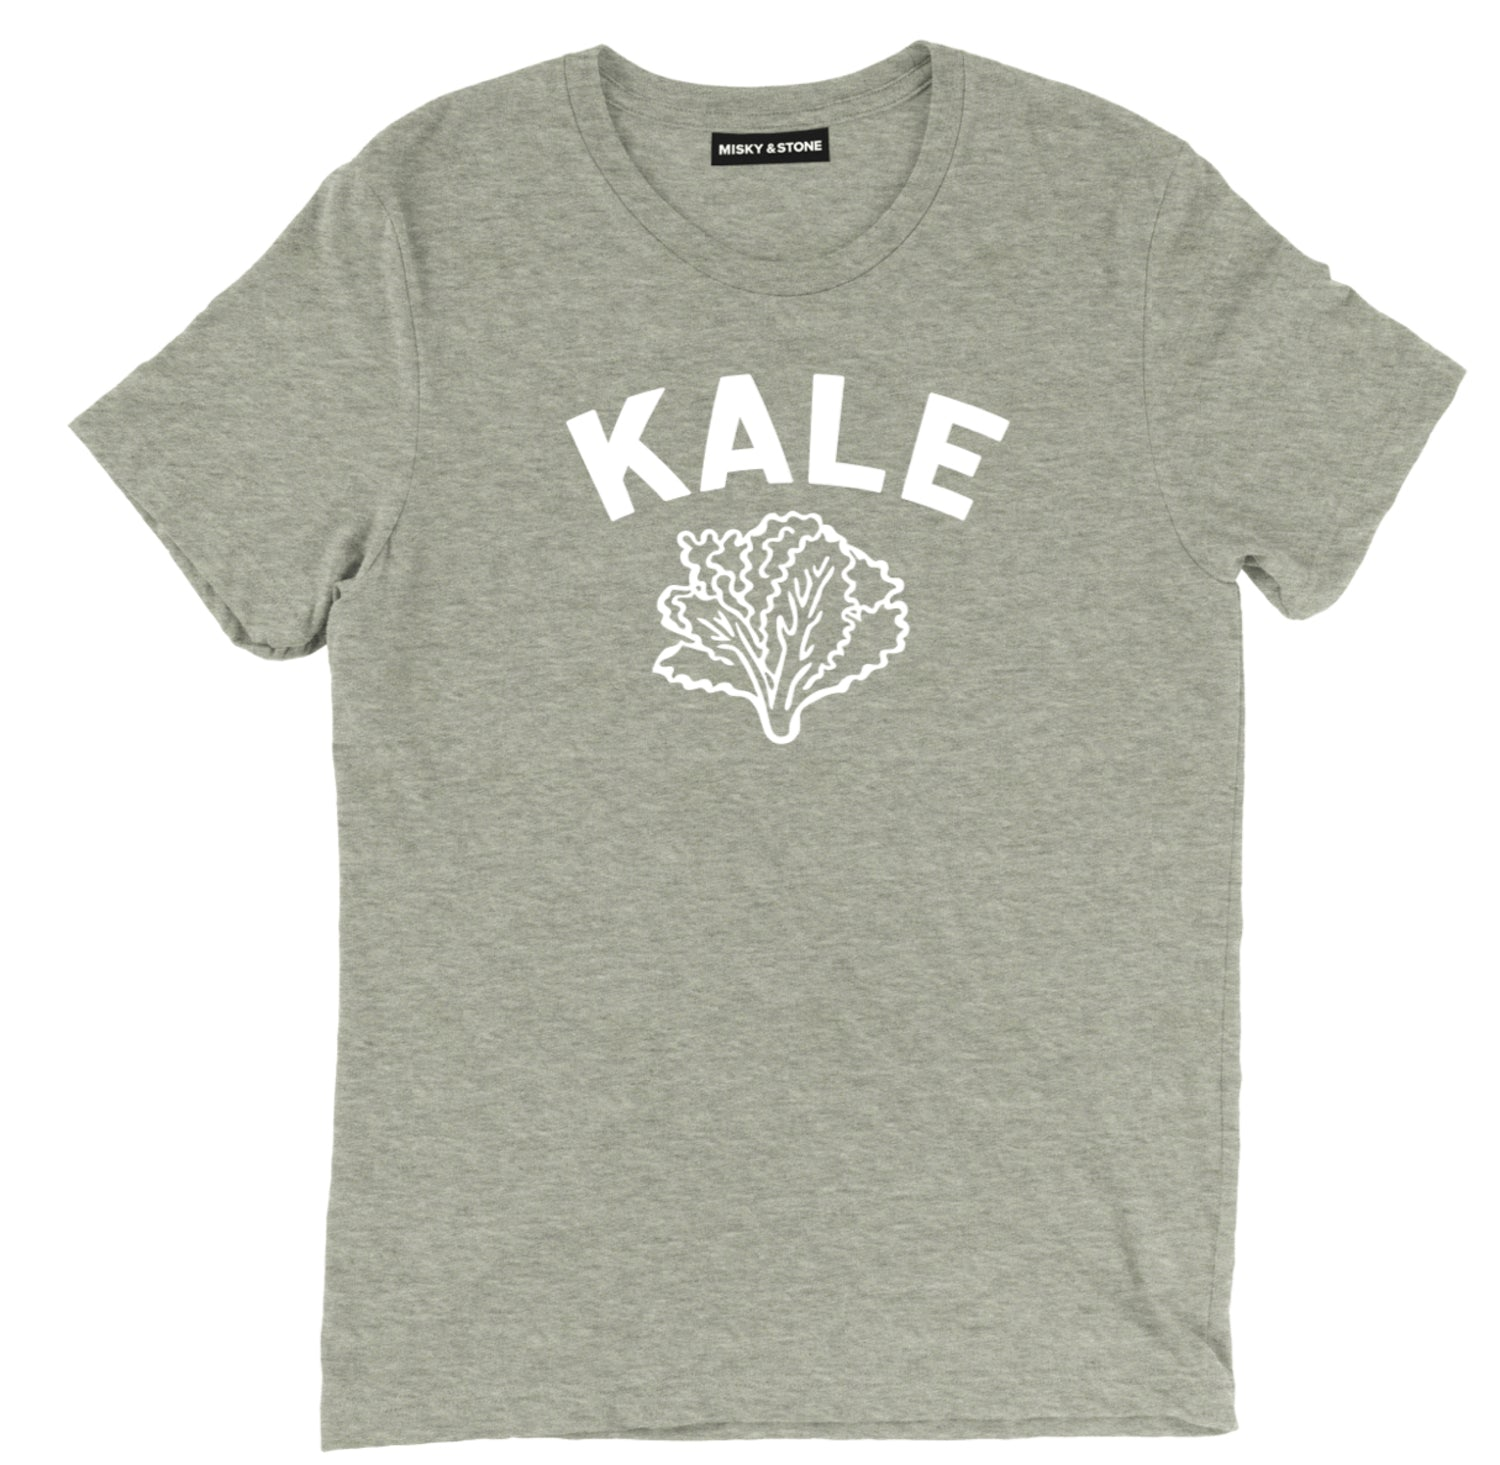 kale vegan tee shirt, kale vegan apparel, kale vegan clothing, kale vegan merch, funny vegan tee shirs,